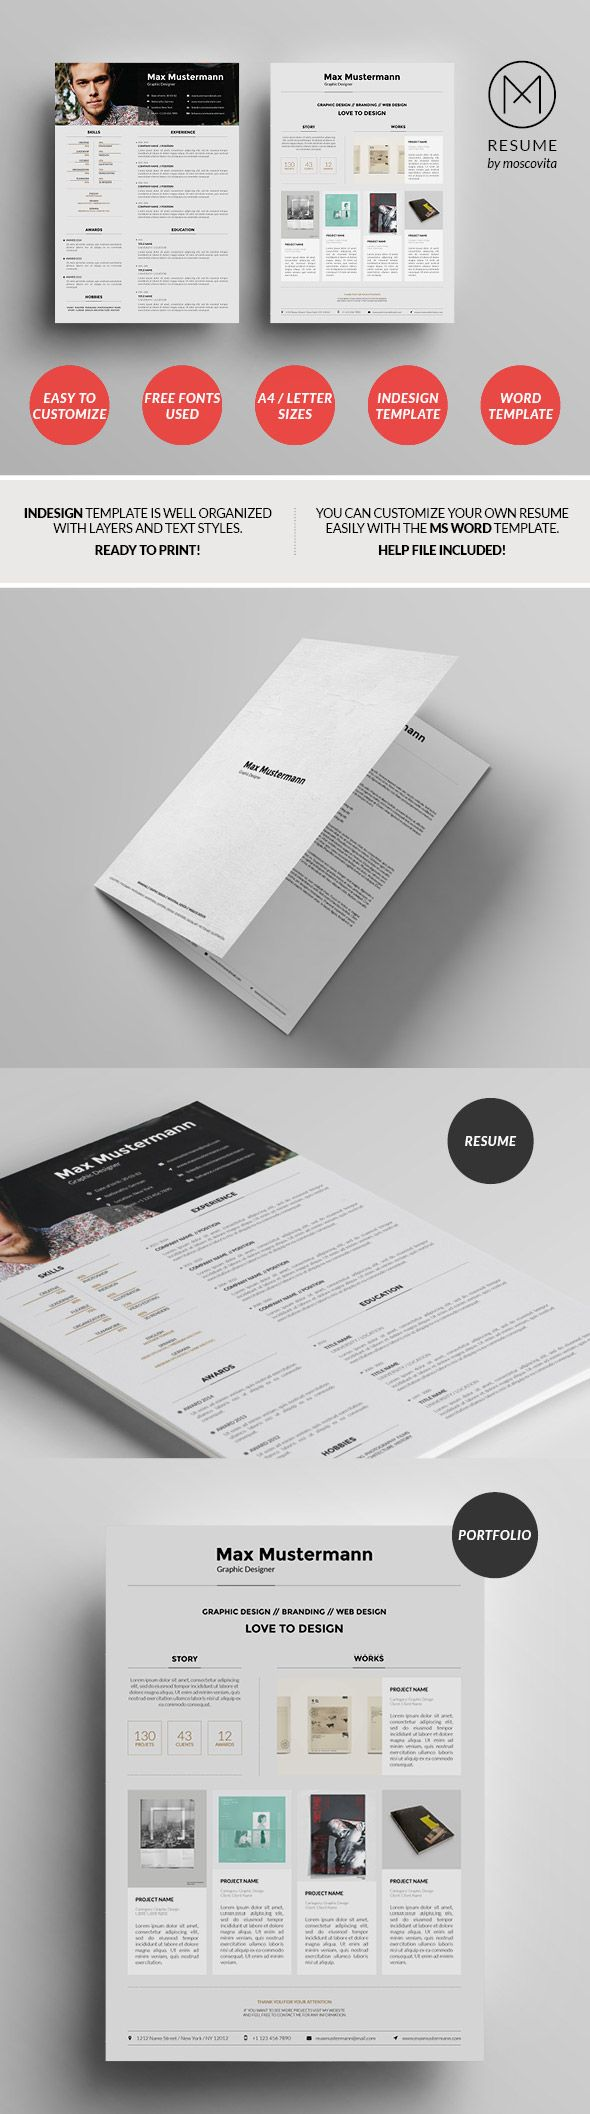 Structured Creative Resume Template Design  Template